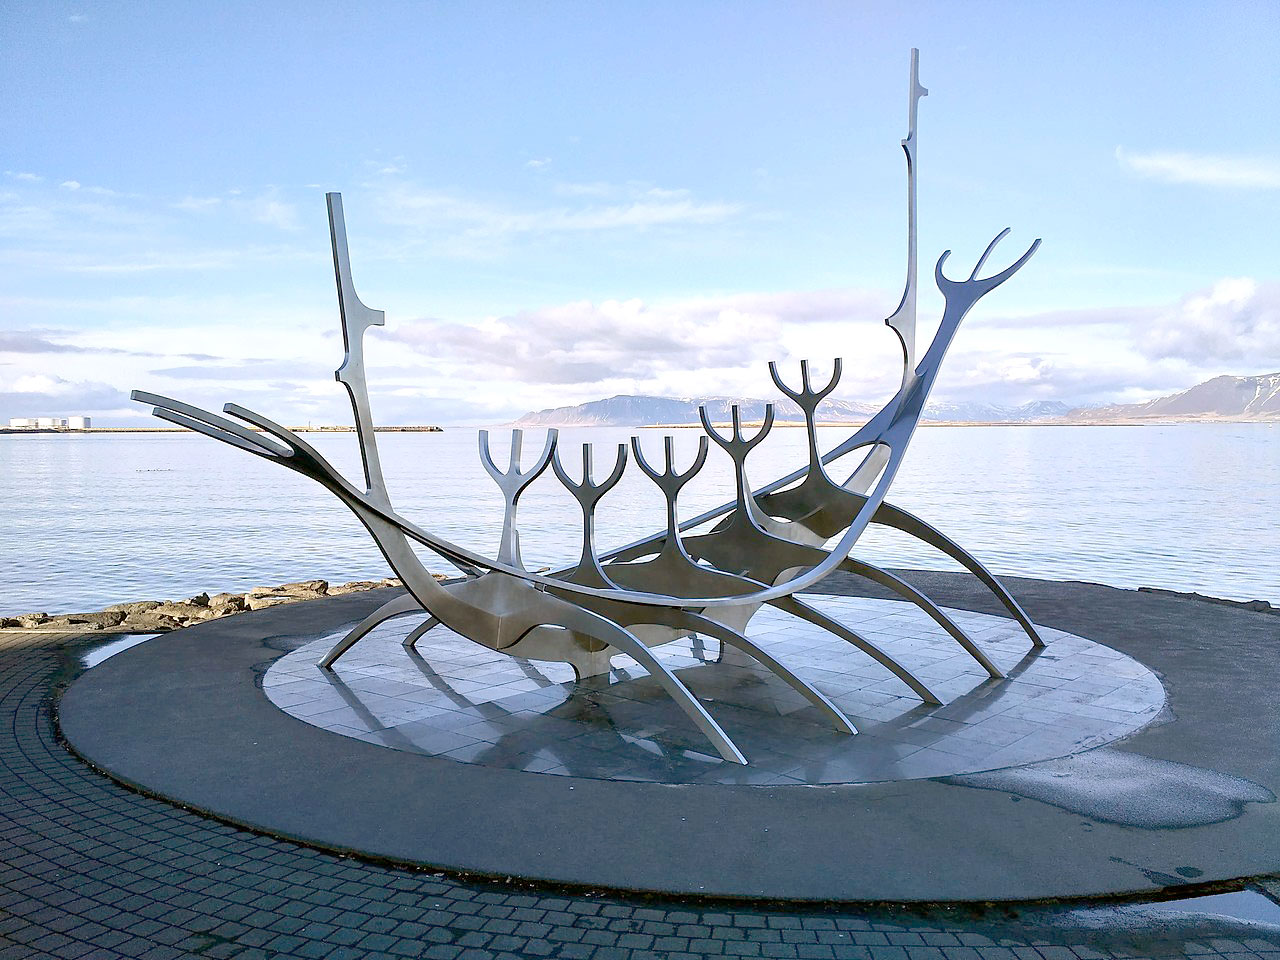 The Sun Voyager sculpture in Reykjavik by Jón Gunnar Árnason. Photograph by Jo Dusepo.